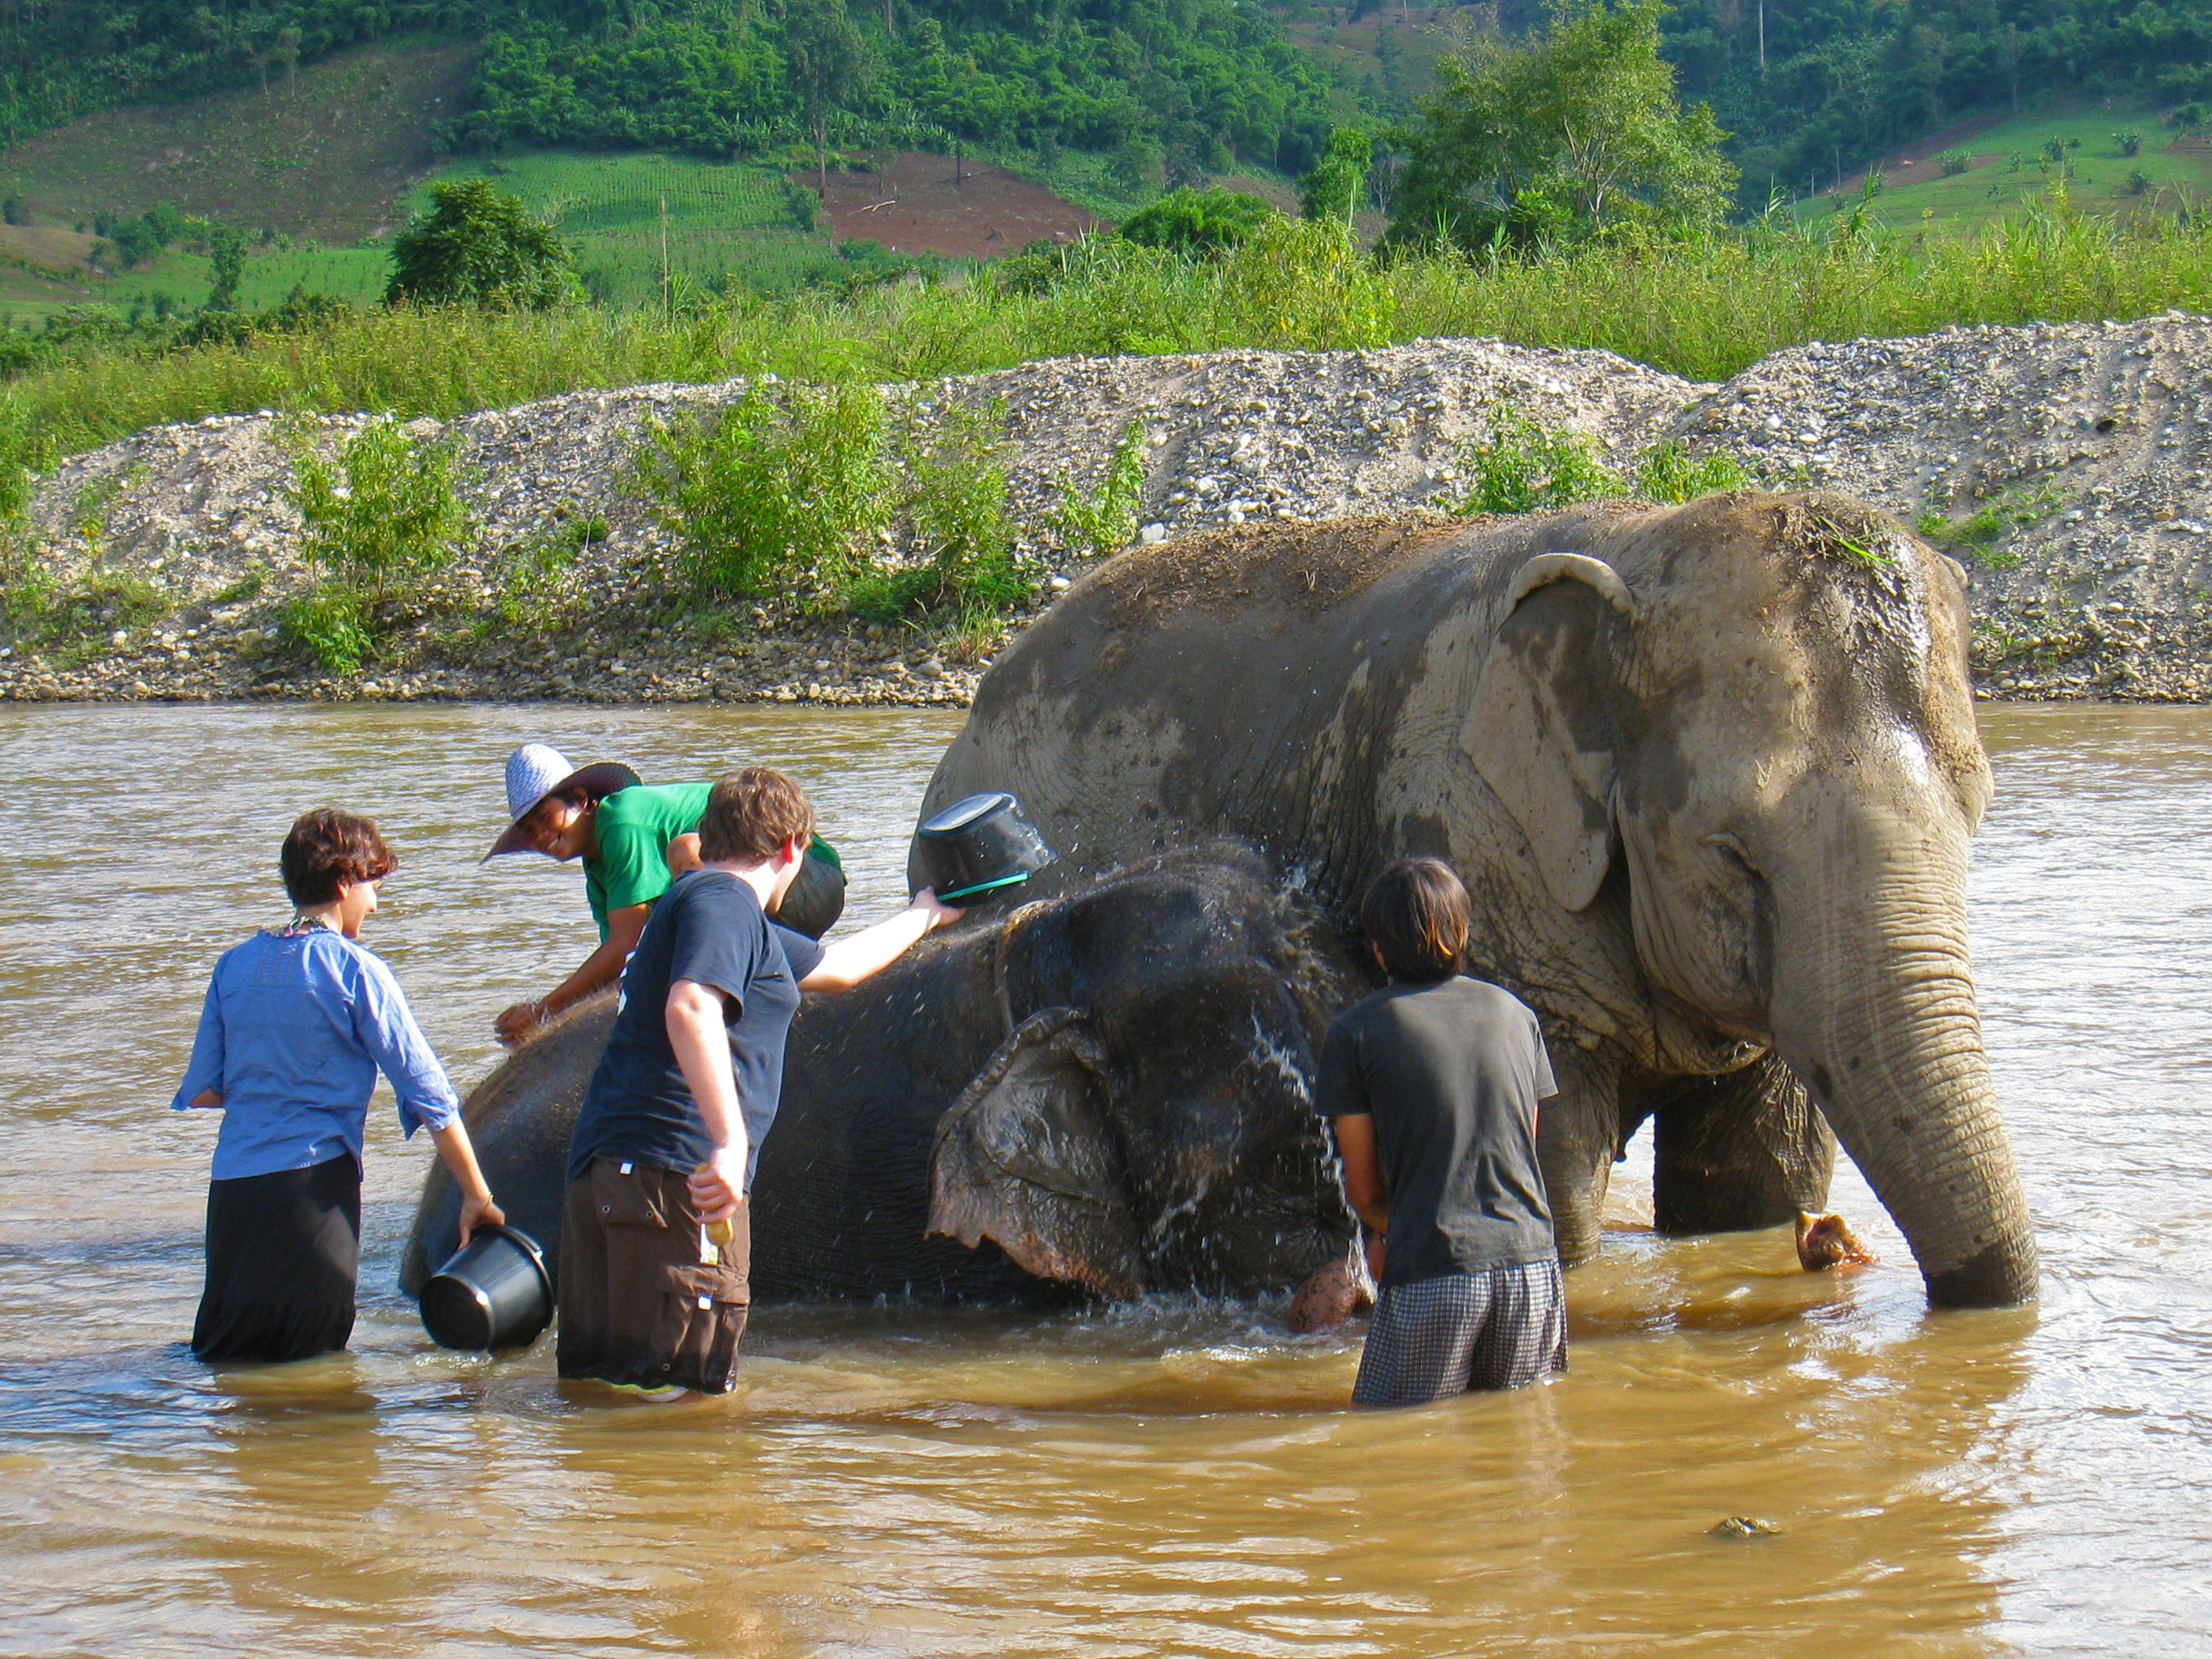 Bathing elephants at a rescue and rehabilitation center in Chiang Mai, Thailand.